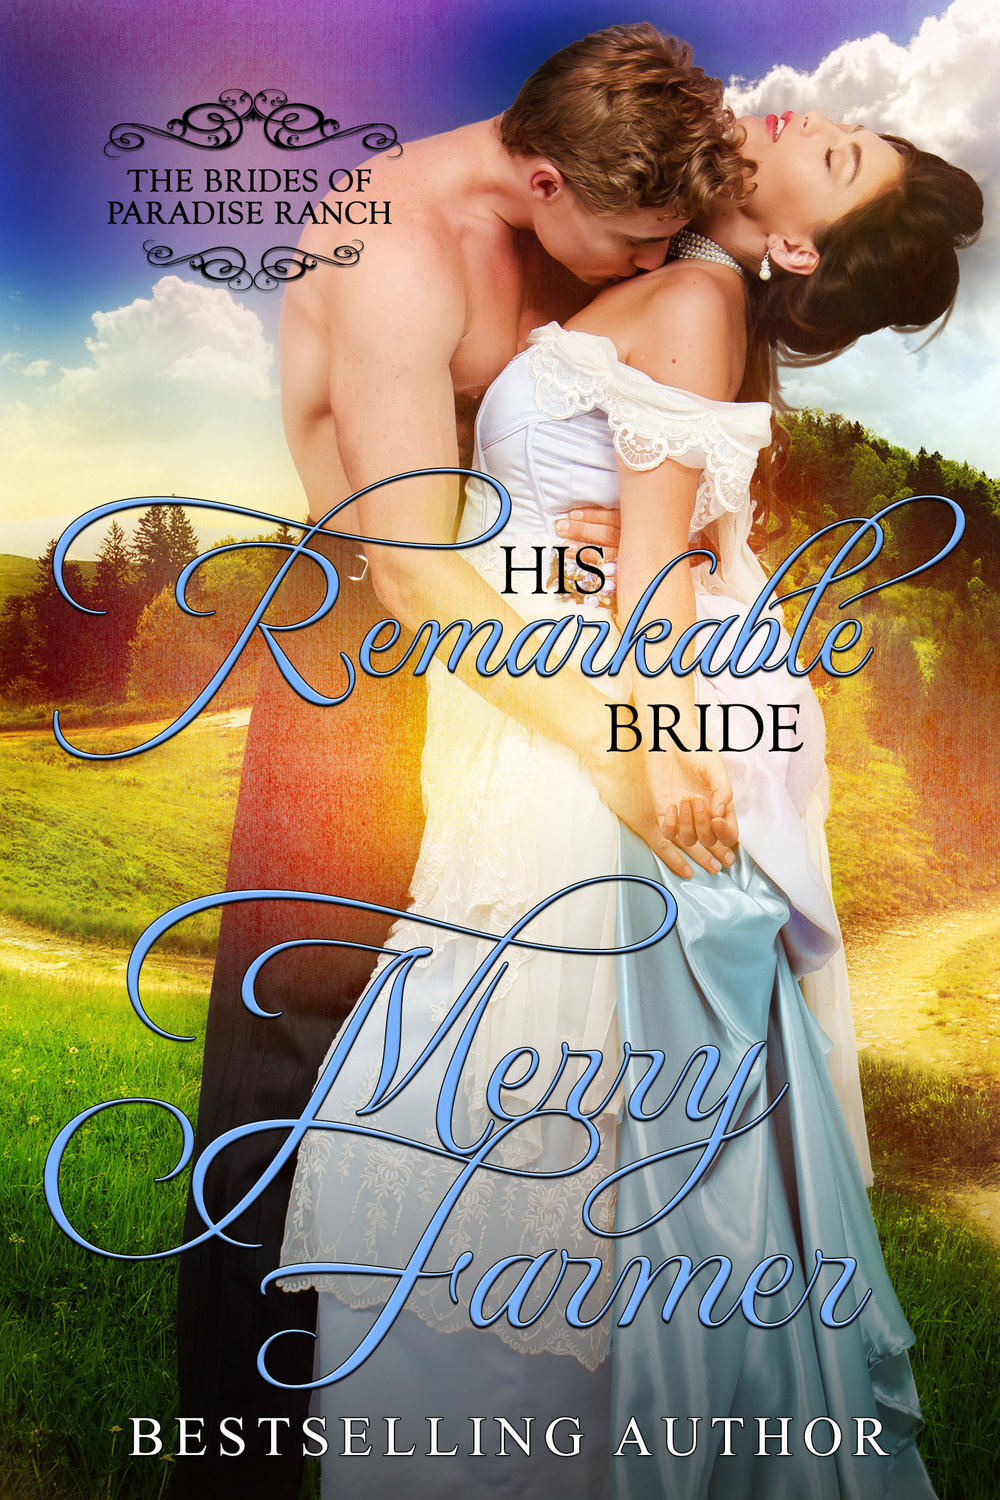 "His Remarkable Bride (Book 6) - Everybody in Haskell, Wyoming knows that railroad stationmaster Athos Strong, widower and father of eight rambunctious children, needs a new bride. Even Athos knows it, but being a single father and a responsible stationmaster doesn't leave him time for romance. It barely leaves him time to remember the hopes and dreams of his younger self. Once, he dreamed of being a hero, a valiant musketeer, like his namesake, but then life took over. He sends away to Hurst Home for a mail-order bride, not expecting anything more than a friend to help him raise his brood. The last thing he expects is love…Elspeth Leonard was once a rising star of the British nobility, until she was seduced into following a wealthy American across the sea. Betrayed, abandoned, and disowned by her family, she has spent the last six years struggling to keep her dignity as a third-rate governess and tutor. Finding Hurst Home was her saving grace. So when she was offered the chance to go west as a bride for a man with eight children, she took it, expecting nothing more than a stable home…But between the lively and mischievous Strong children and the conniving and revenge-seeking Bonneville family, Elspeth has no idea what she's stepping into. When the children are taken away after allegations of neglect leveled against Athos by the Bonnevilles, Elspeth must step up to help Athos fight to keep his family together. What was supposed to be a mutually-beneficial, platonic marriage becomes something much more as both Athos and Elspeth come to see the heroism in the person they've married…The greatest heroes are sometimes found in the most ordinary hearts…PLEASE BE ADVISED: Steam Level = VERY HOTIf you would like to read this story without any ""scenes,"" check out Elspeth: The Remarkable Bride."